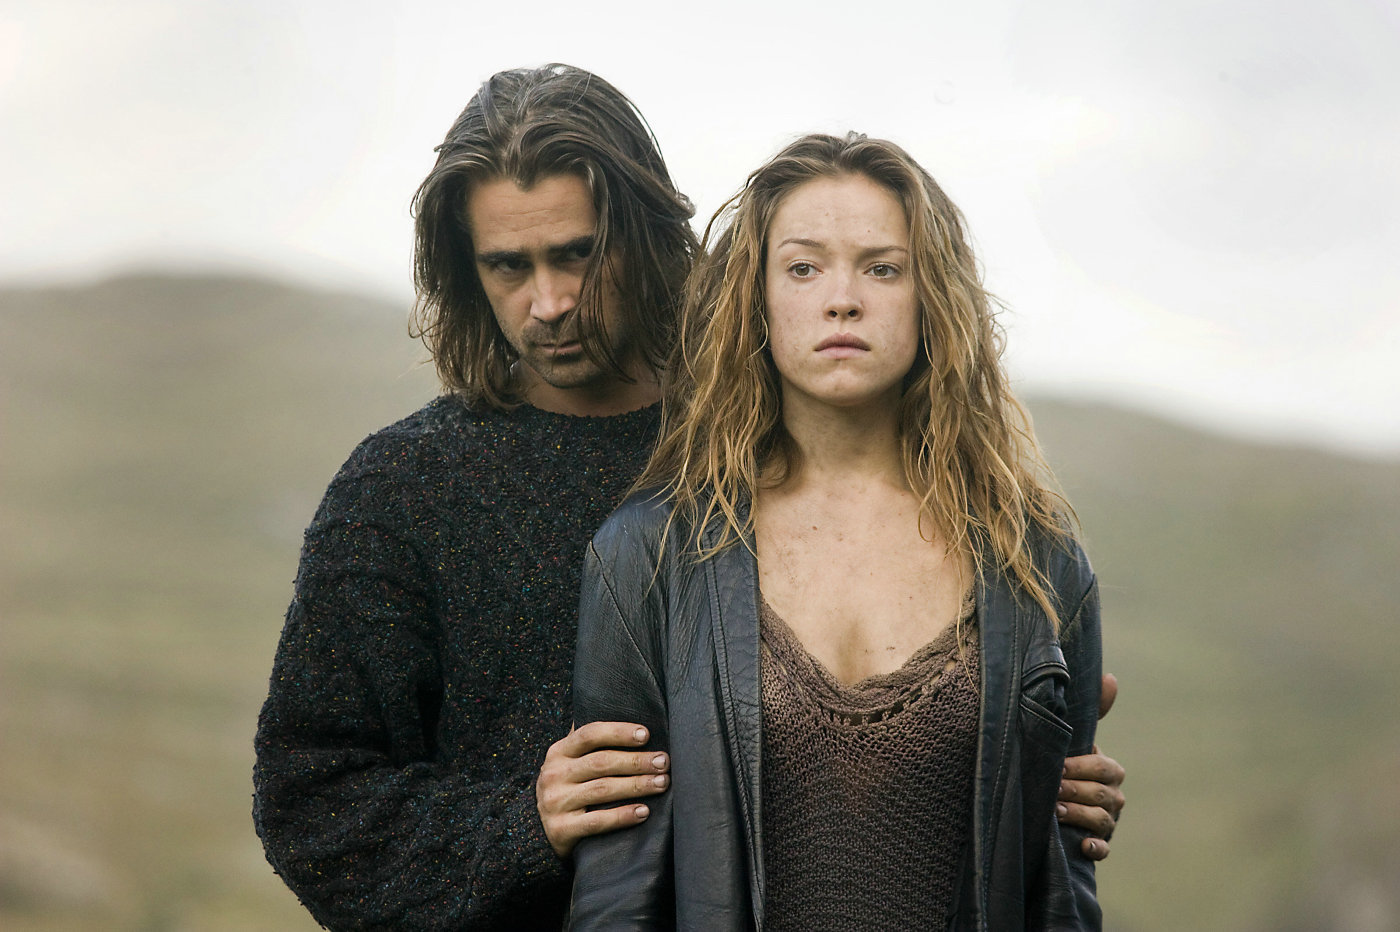 Colin Farrell as the fisherman Syracuse and Ondine (Alicja Bachleda) in Ondine (2009)